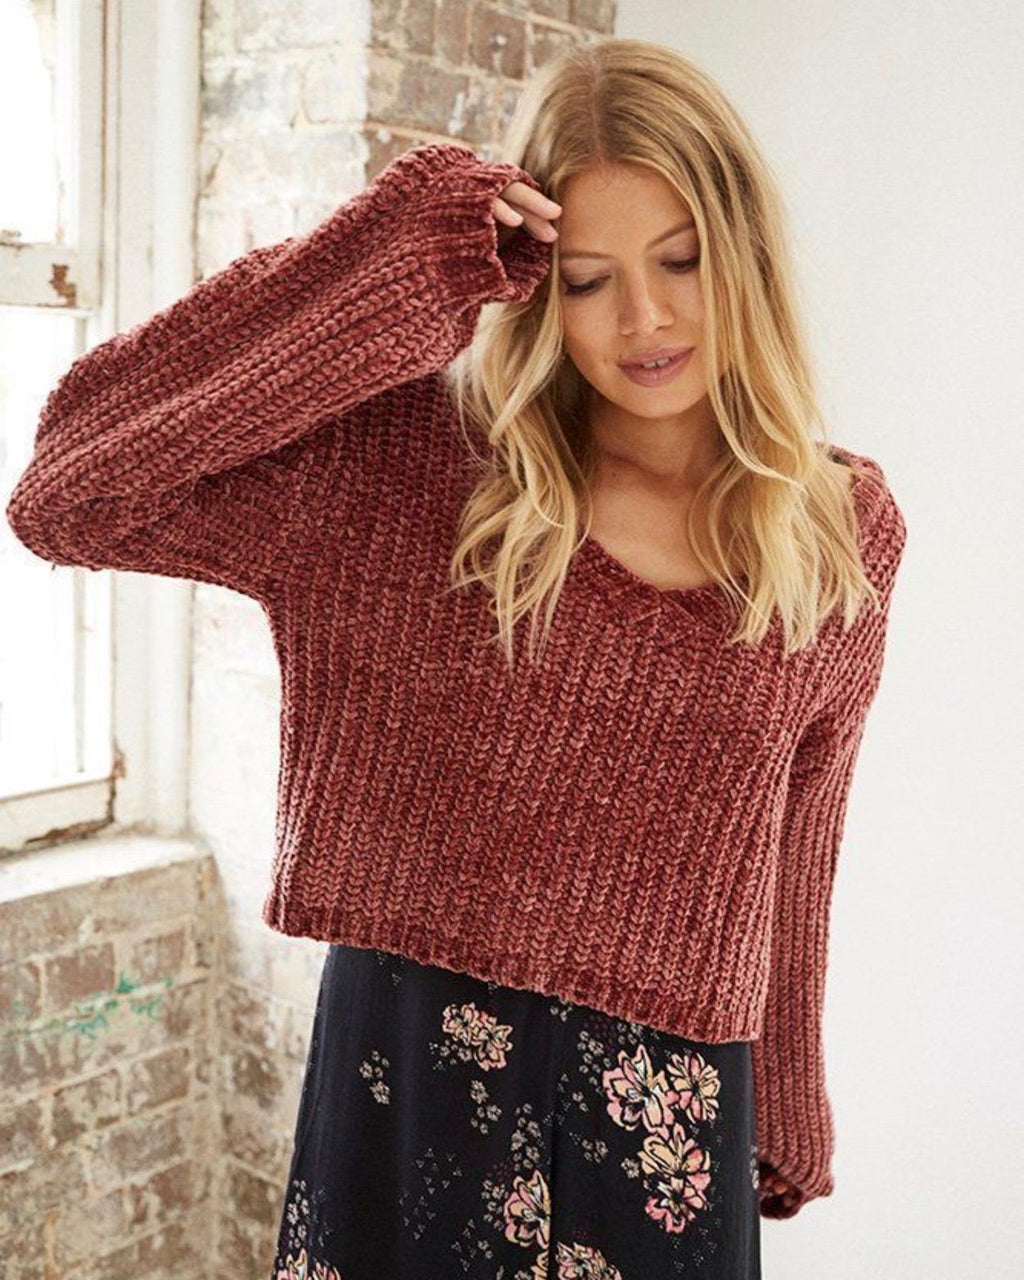 Final Sale - Somedays Lovin - Sweet Skies Chenille Jumper in Apricot